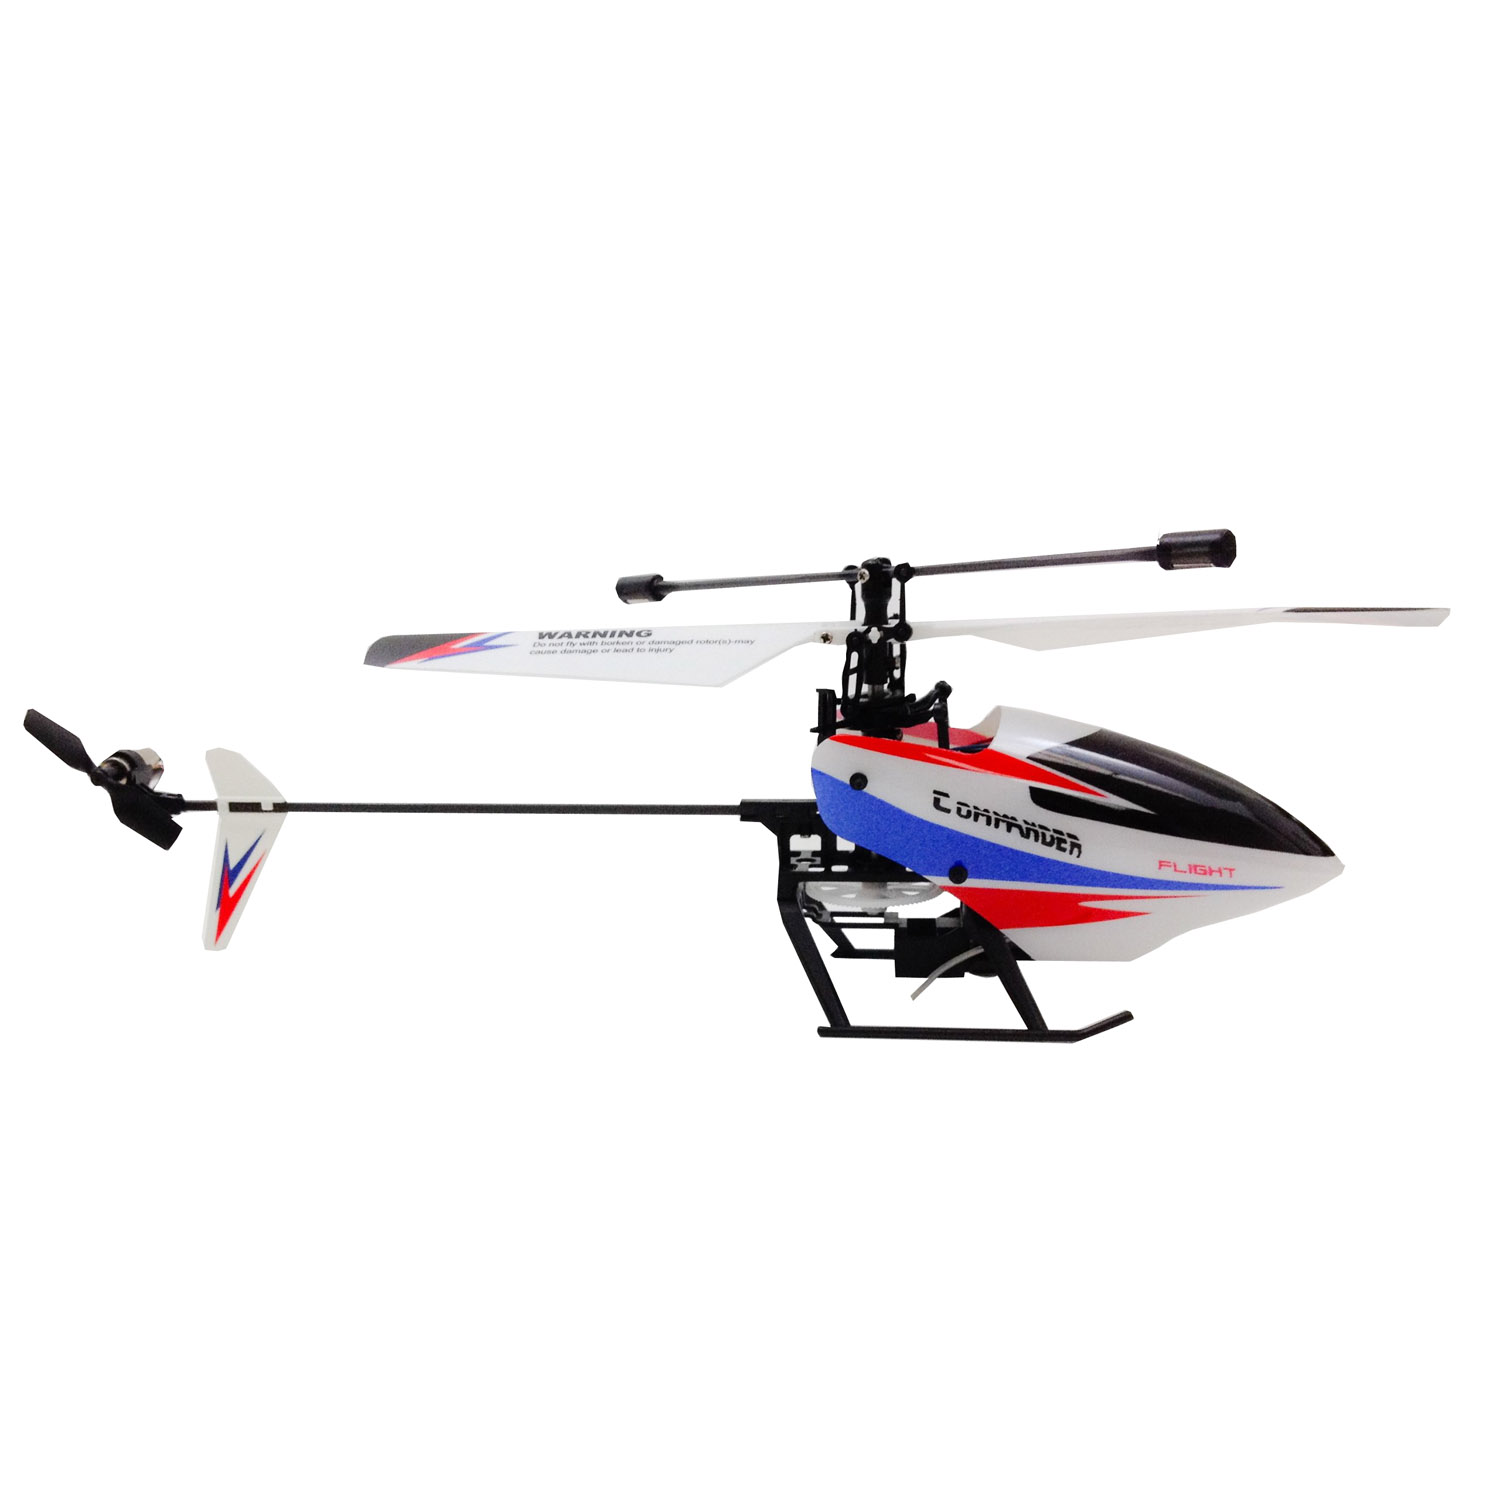 WL V911 Pro Version 2 2.4G 4 Channel Fixed Pitch Single Rotor Helicopter Upgrade(Orange &... by Wltoys